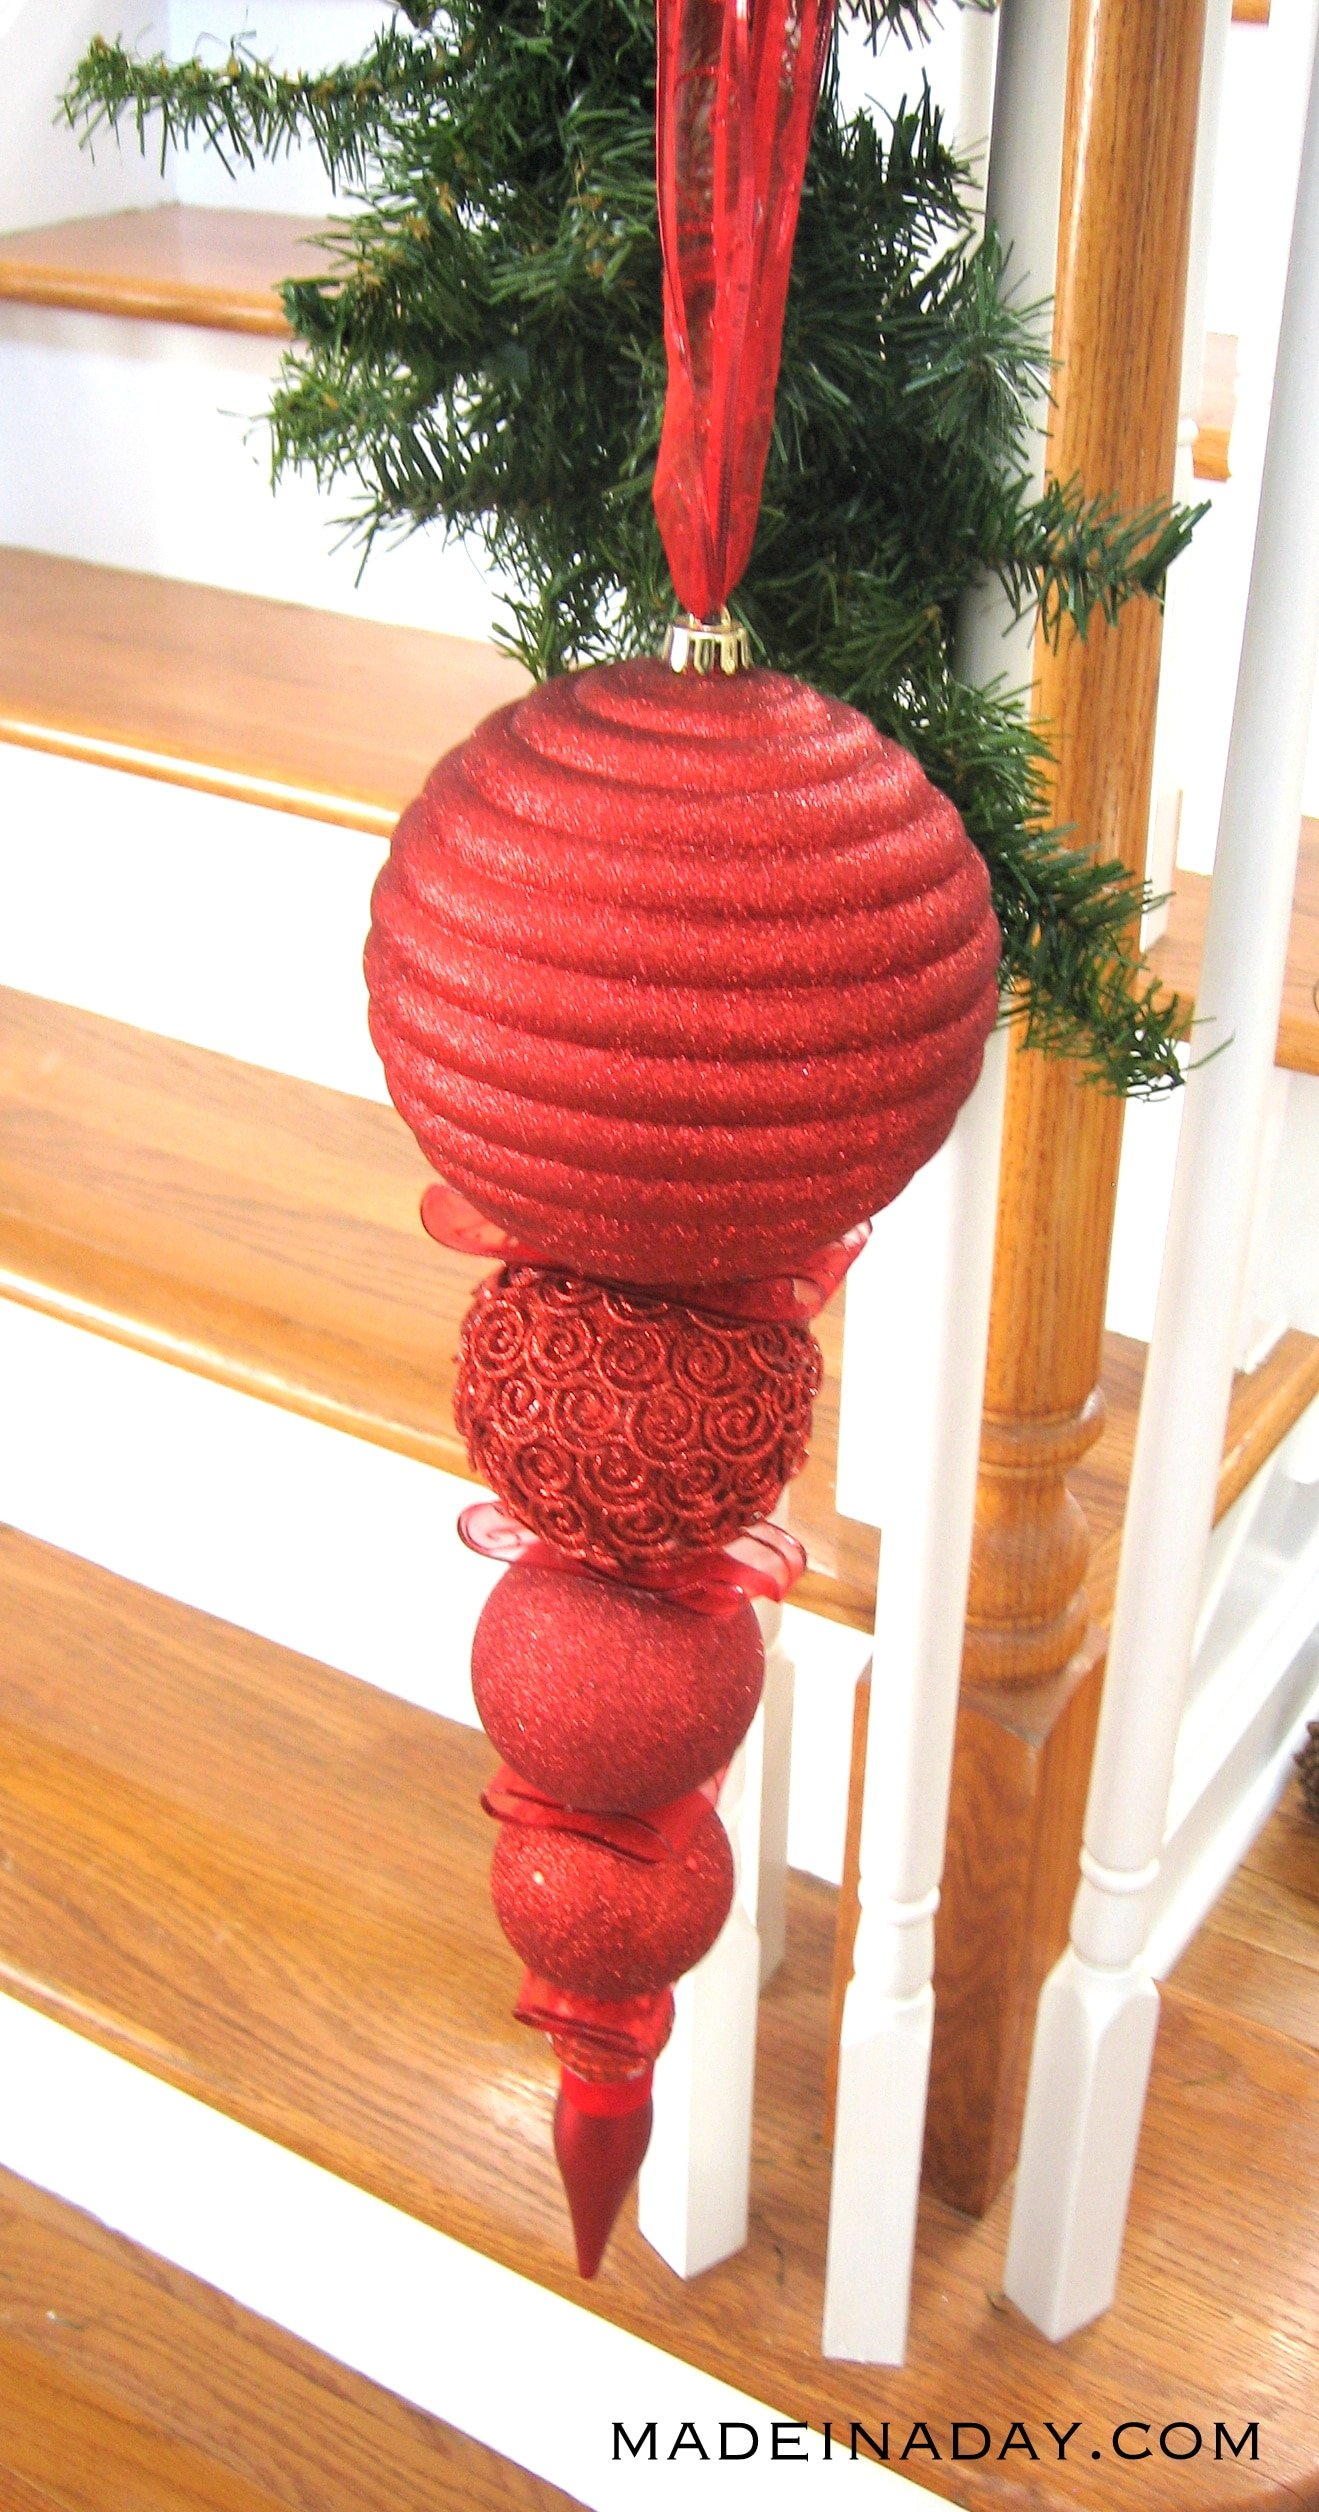 large-stacked-ornament-holiday-decor-madeinaday-com